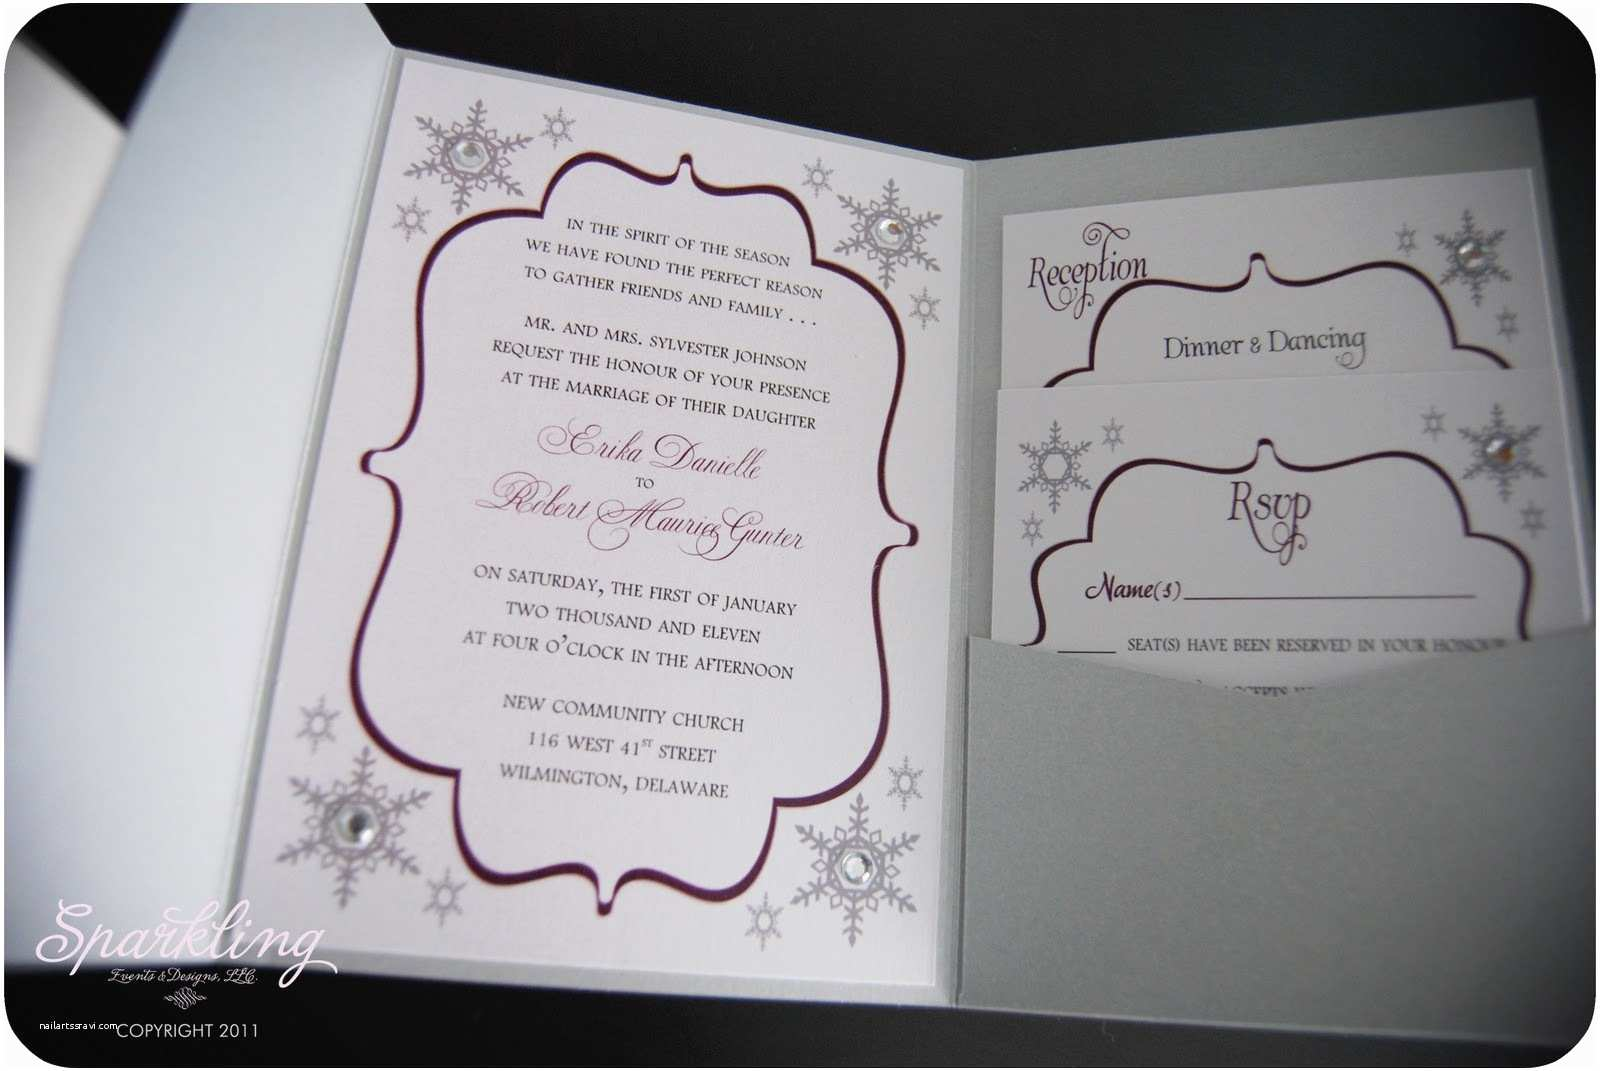 Snowflake Wedding Invitations Sparkling events & Designs Real Invitations Winter